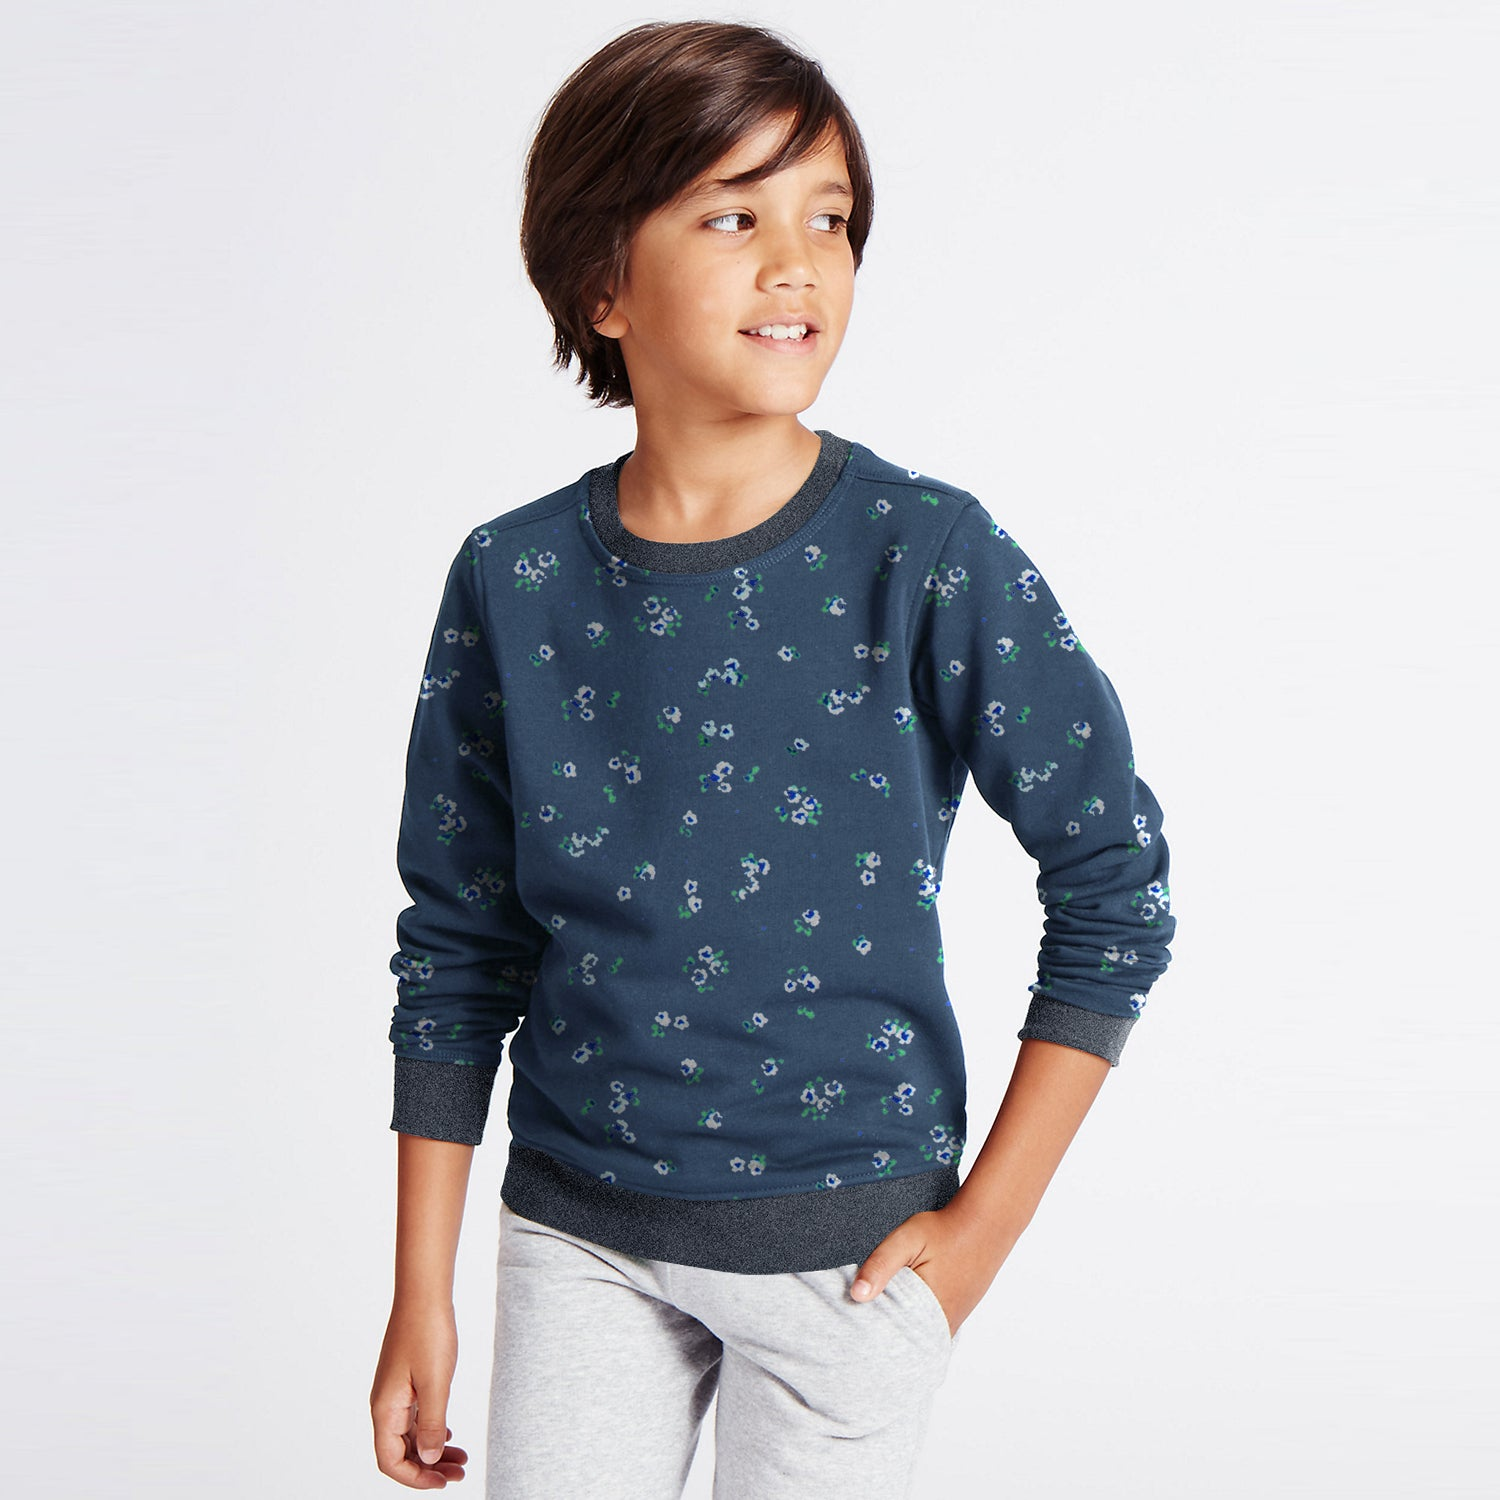 Tommy Hilfiger Fleece Crew Neck Sweatshirt For Kids-Light Navy with Flower Print-BE10710